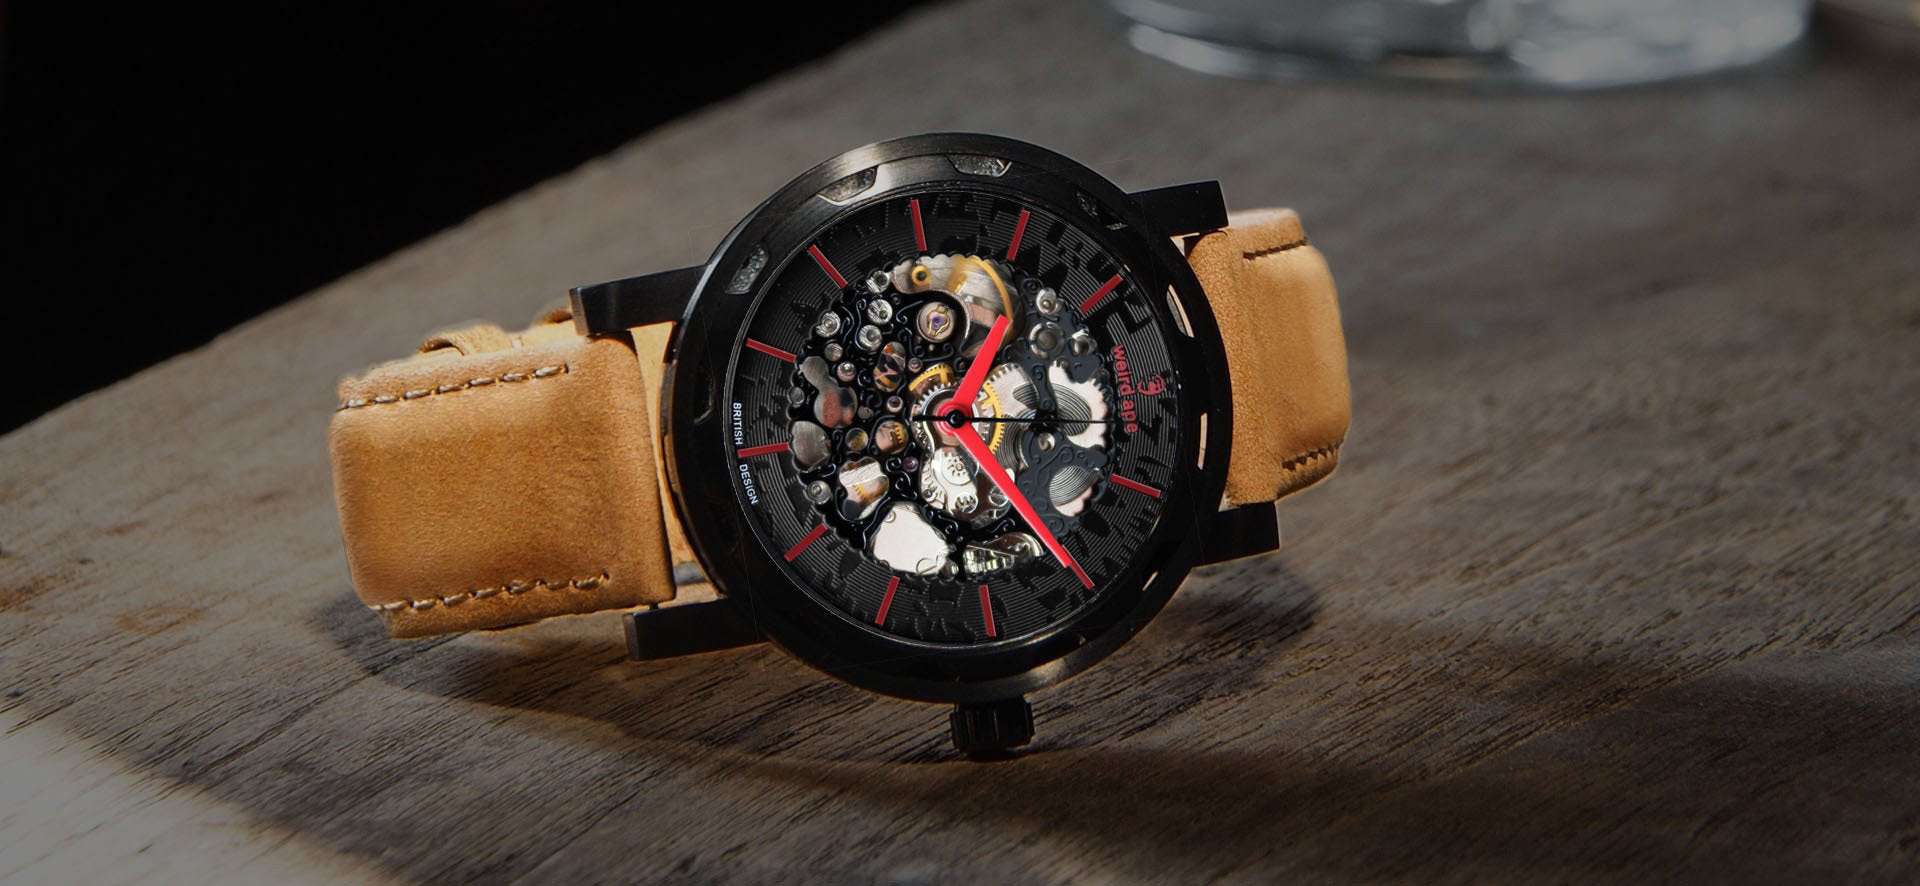 Black skeleton watch with a tan strap in a lifestyle image